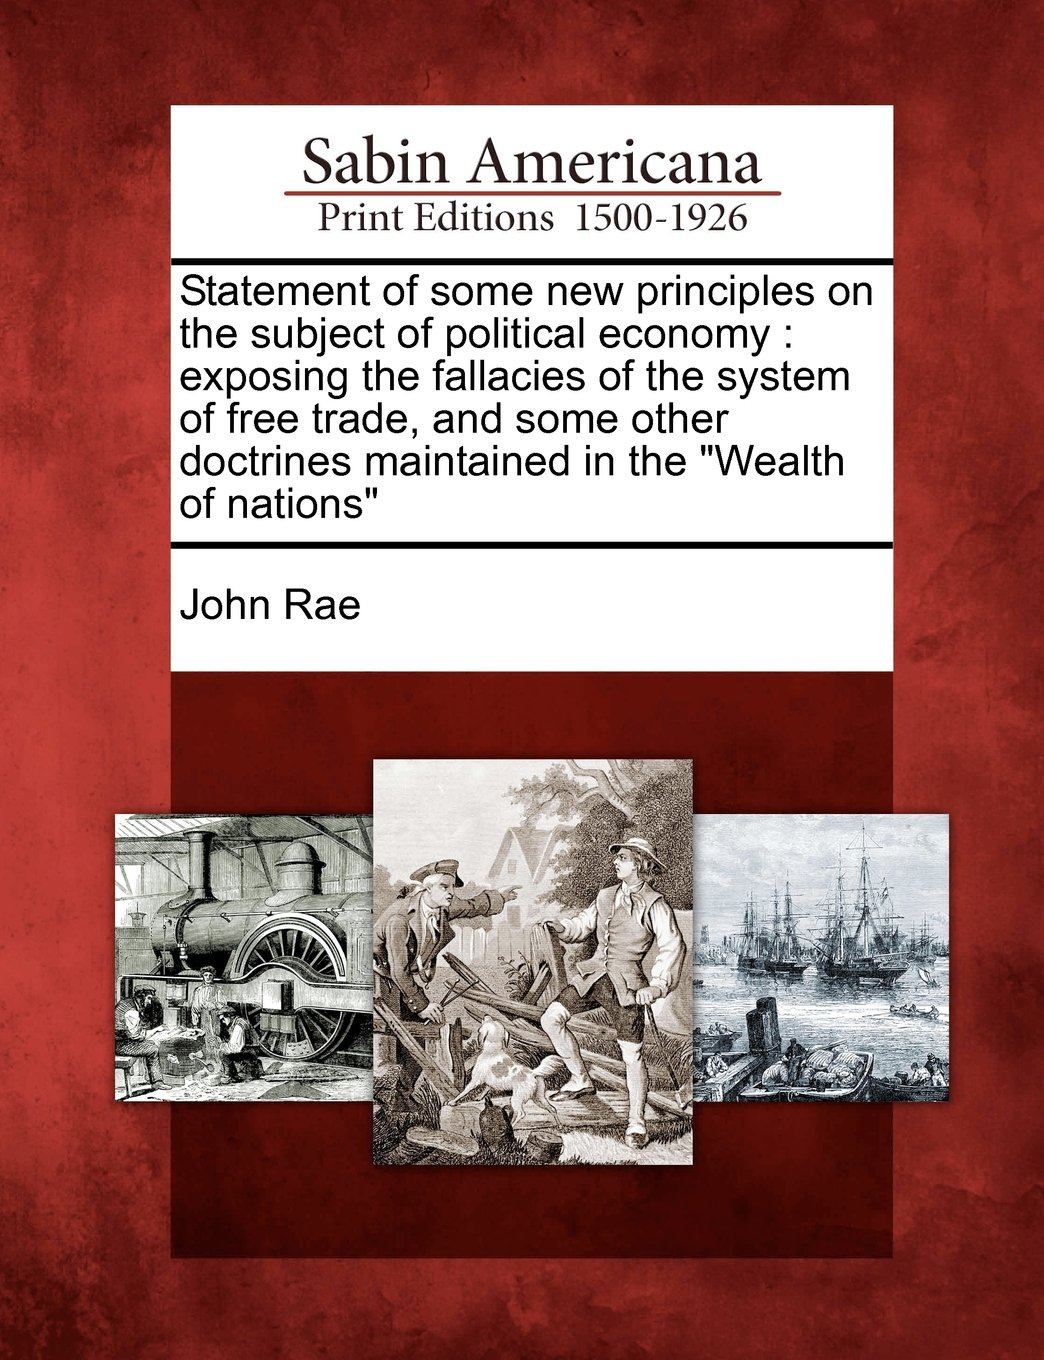 "Statement of some new principles on the subject of political economy: exposing the fallacies of the system of free trade, and some other doctrines maintained in the ""Wealth of nations"" pdf"